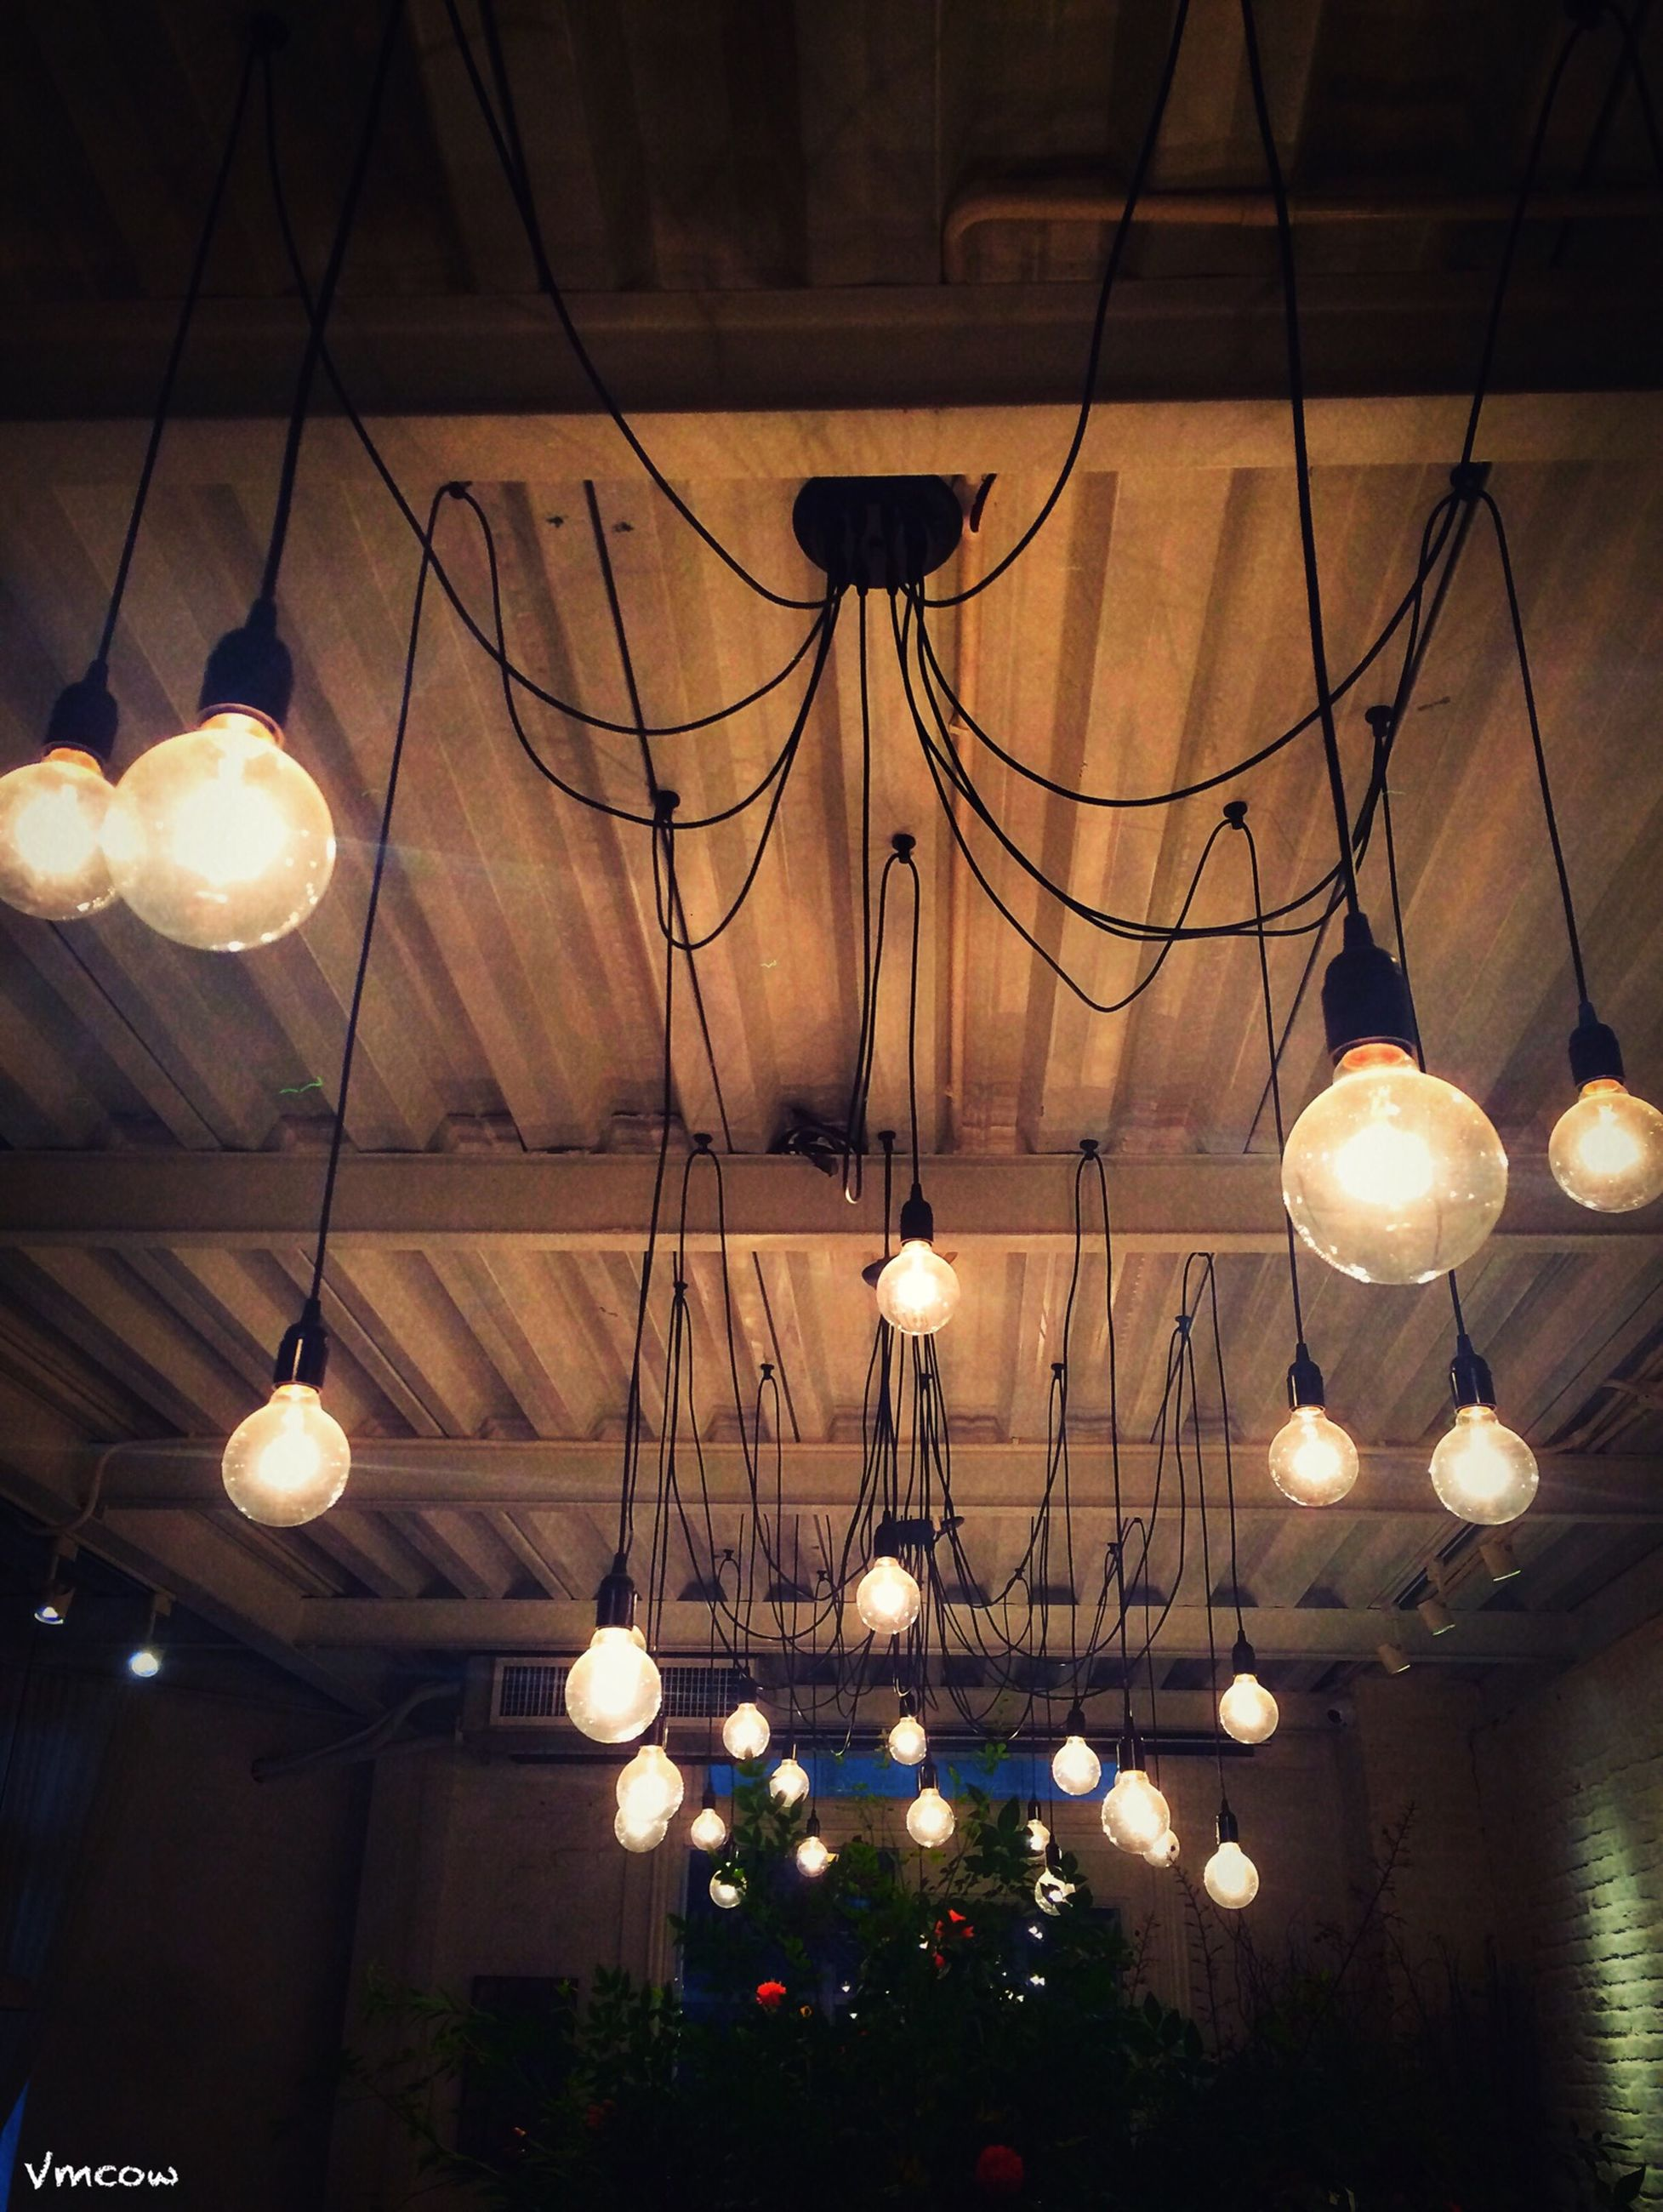 illuminated, indoors, lighting equipment, ceiling, hanging, electric lamp, electricity, decoration, electric light, chandelier, low angle view, light bulb, home interior, light - natural phenomenon, night, decor, lamp, glowing, lit, hanging light